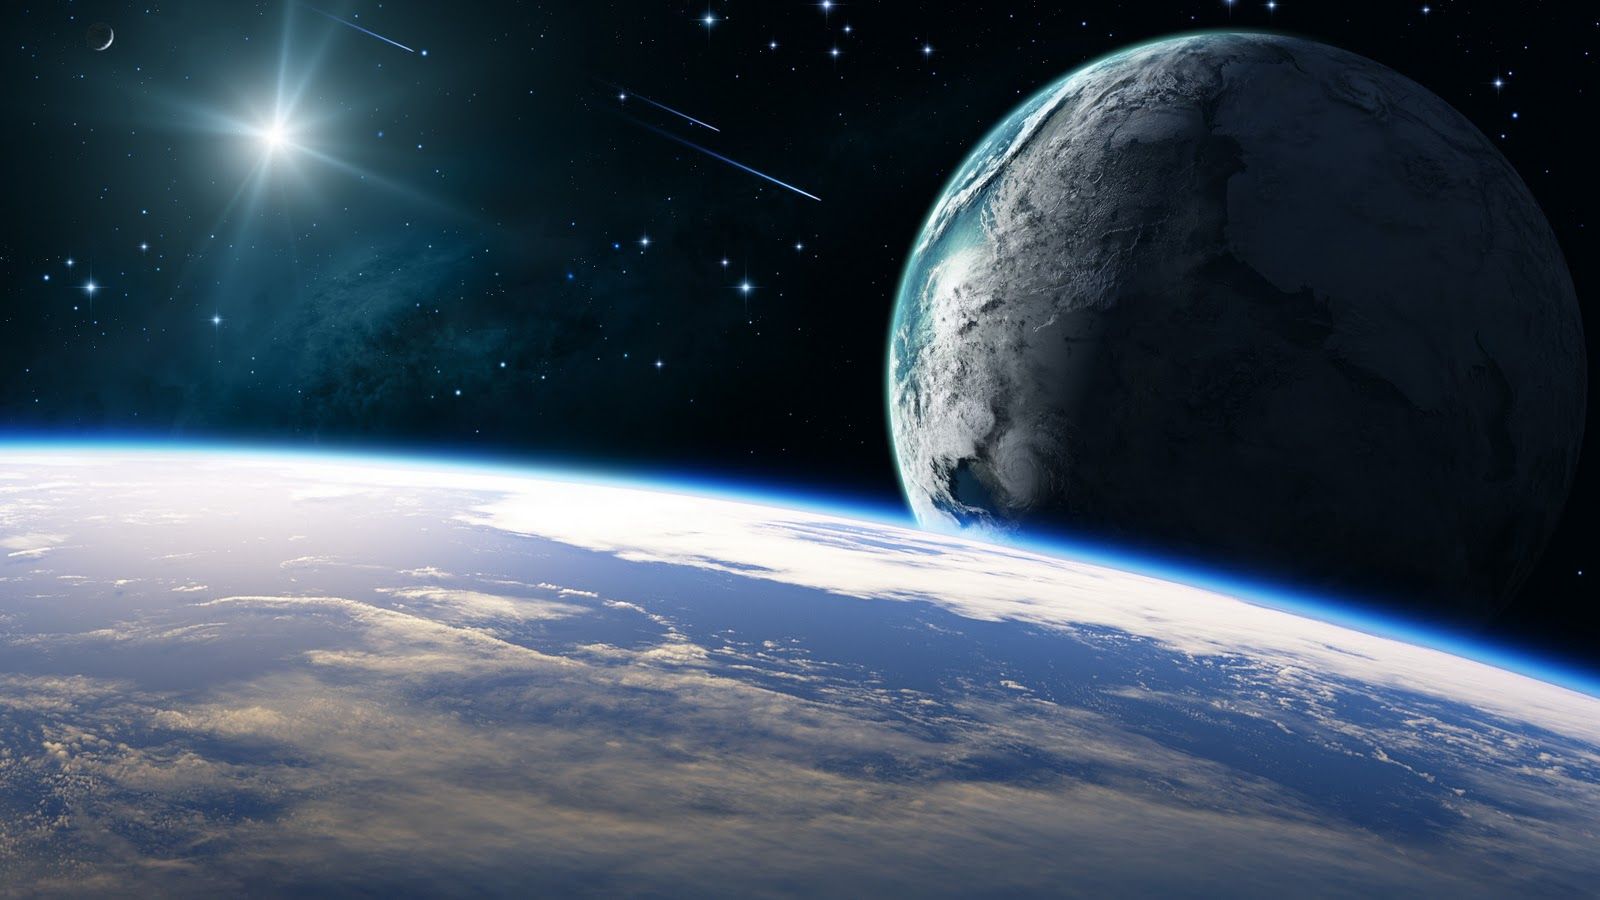 Planet Earth seen from outer space wallpaper The Wallpaper Database 1600x900